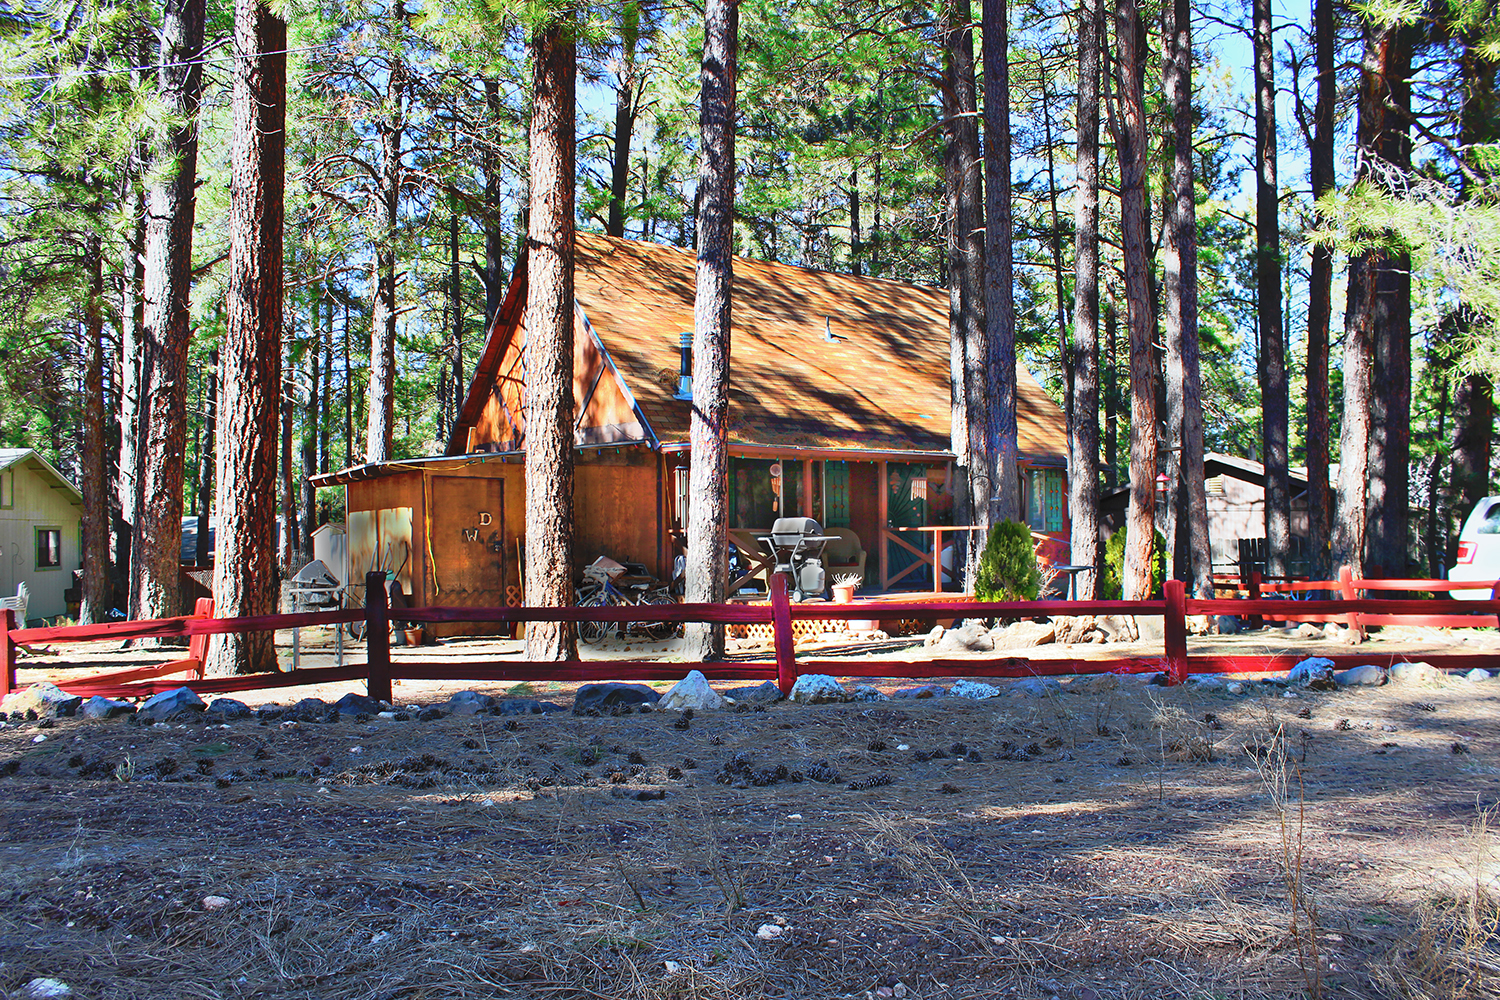 Charming home in the woods kachina village flagstaff for Az cabins for sale